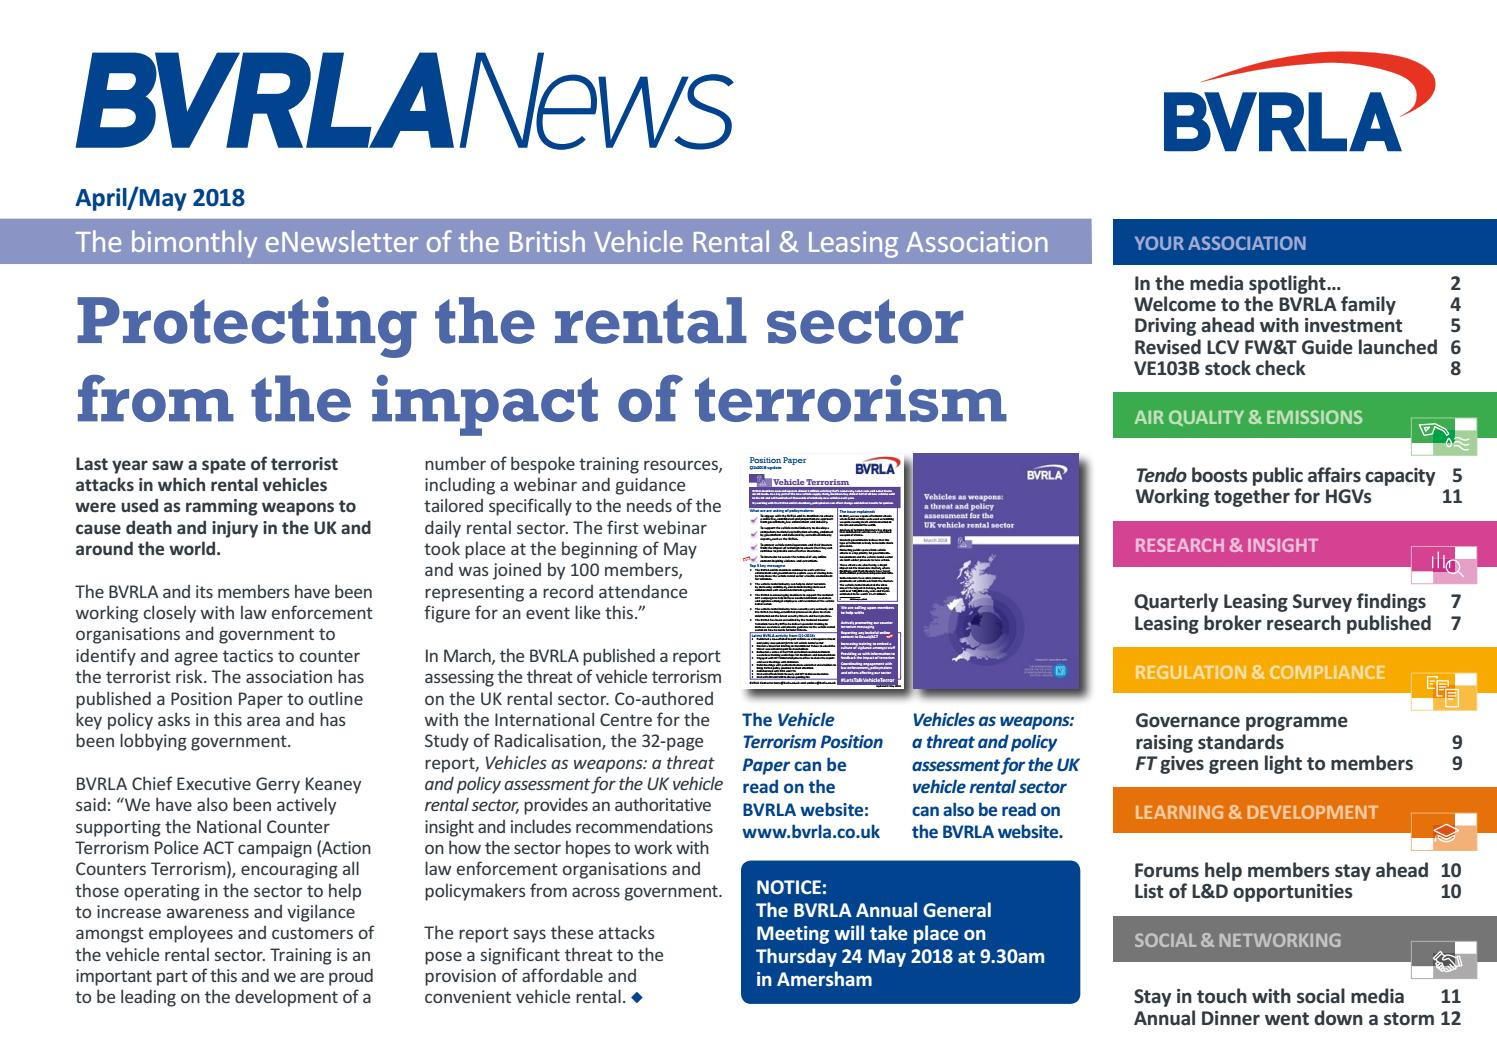 BVRLA News April/May 2018 by BVRLA - issuu